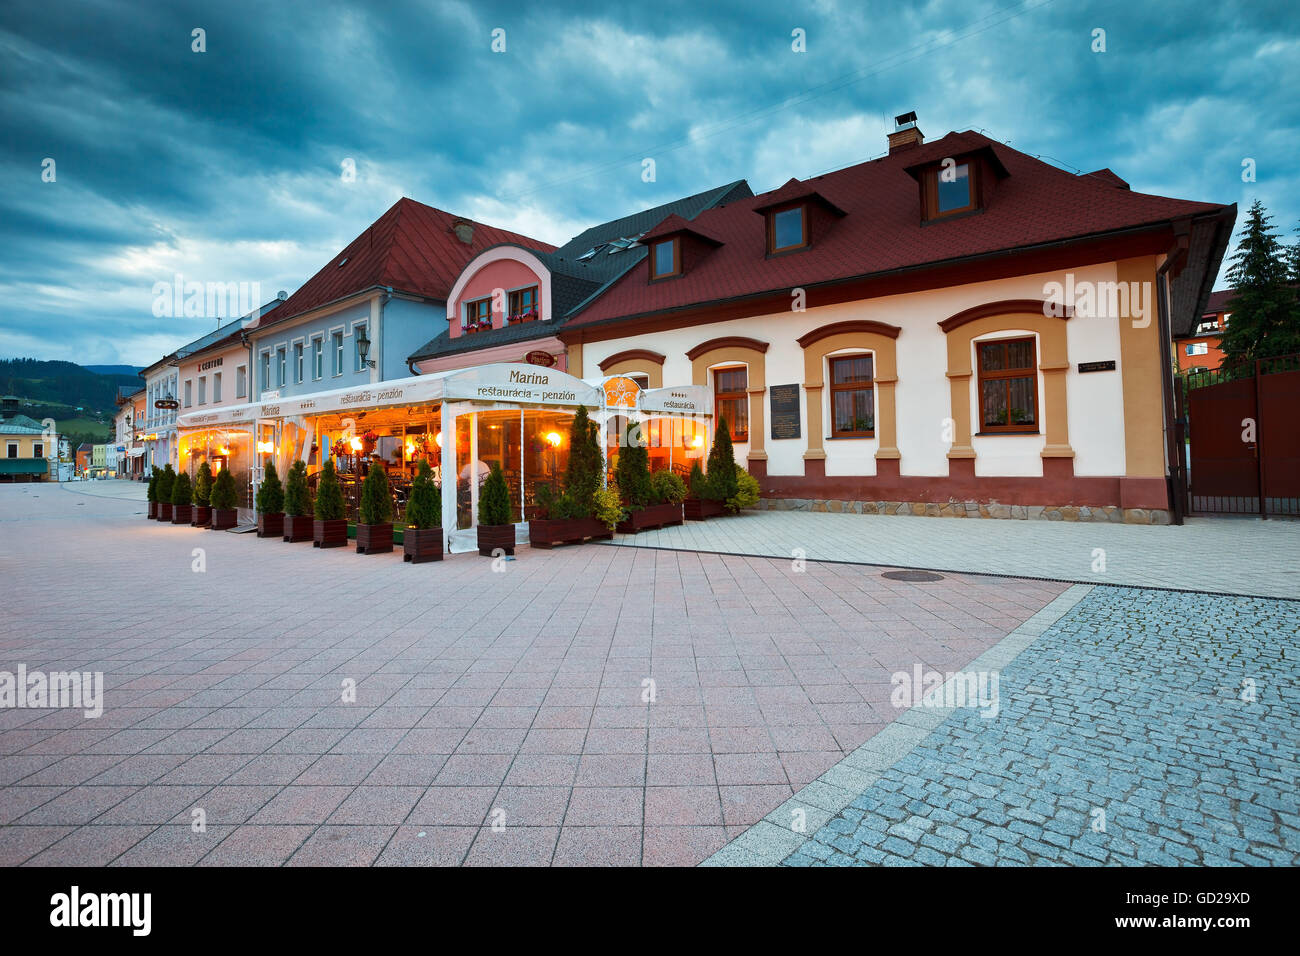 Pubs in the main square of Dolny Kubin late in the evening. - Stock Image